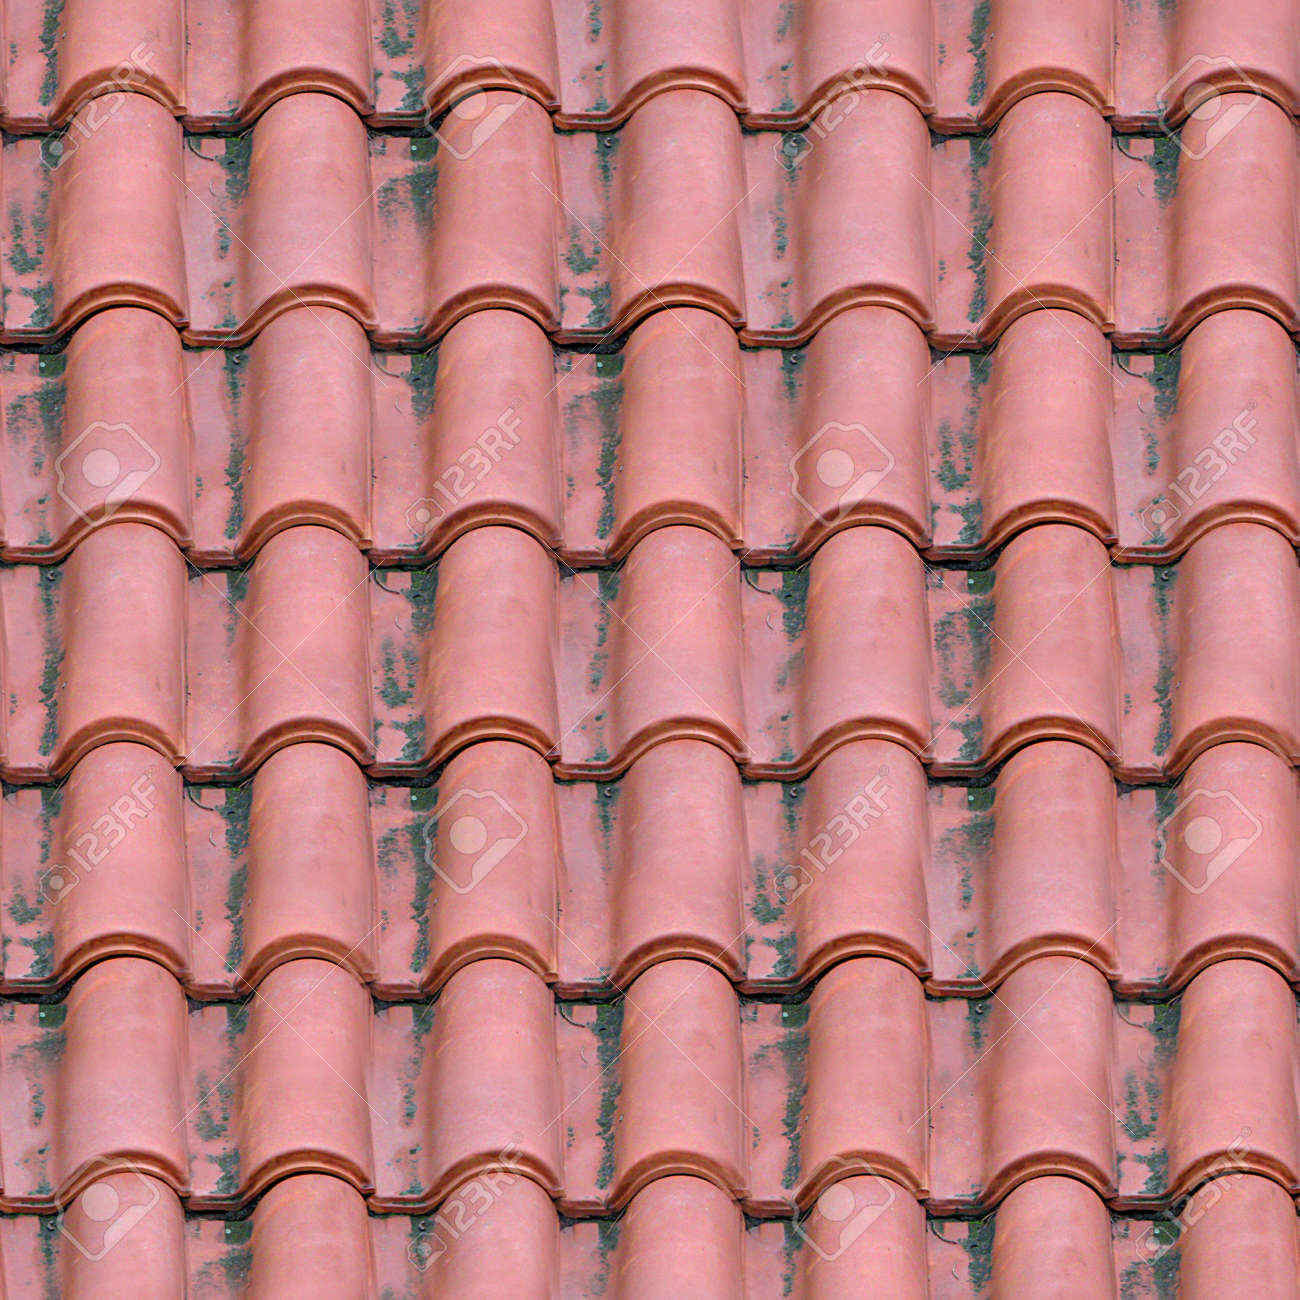 Spanish Tile Roofing Seamless Texture Tile Stock Photo Picture And Royalty Free Image Image 13102646